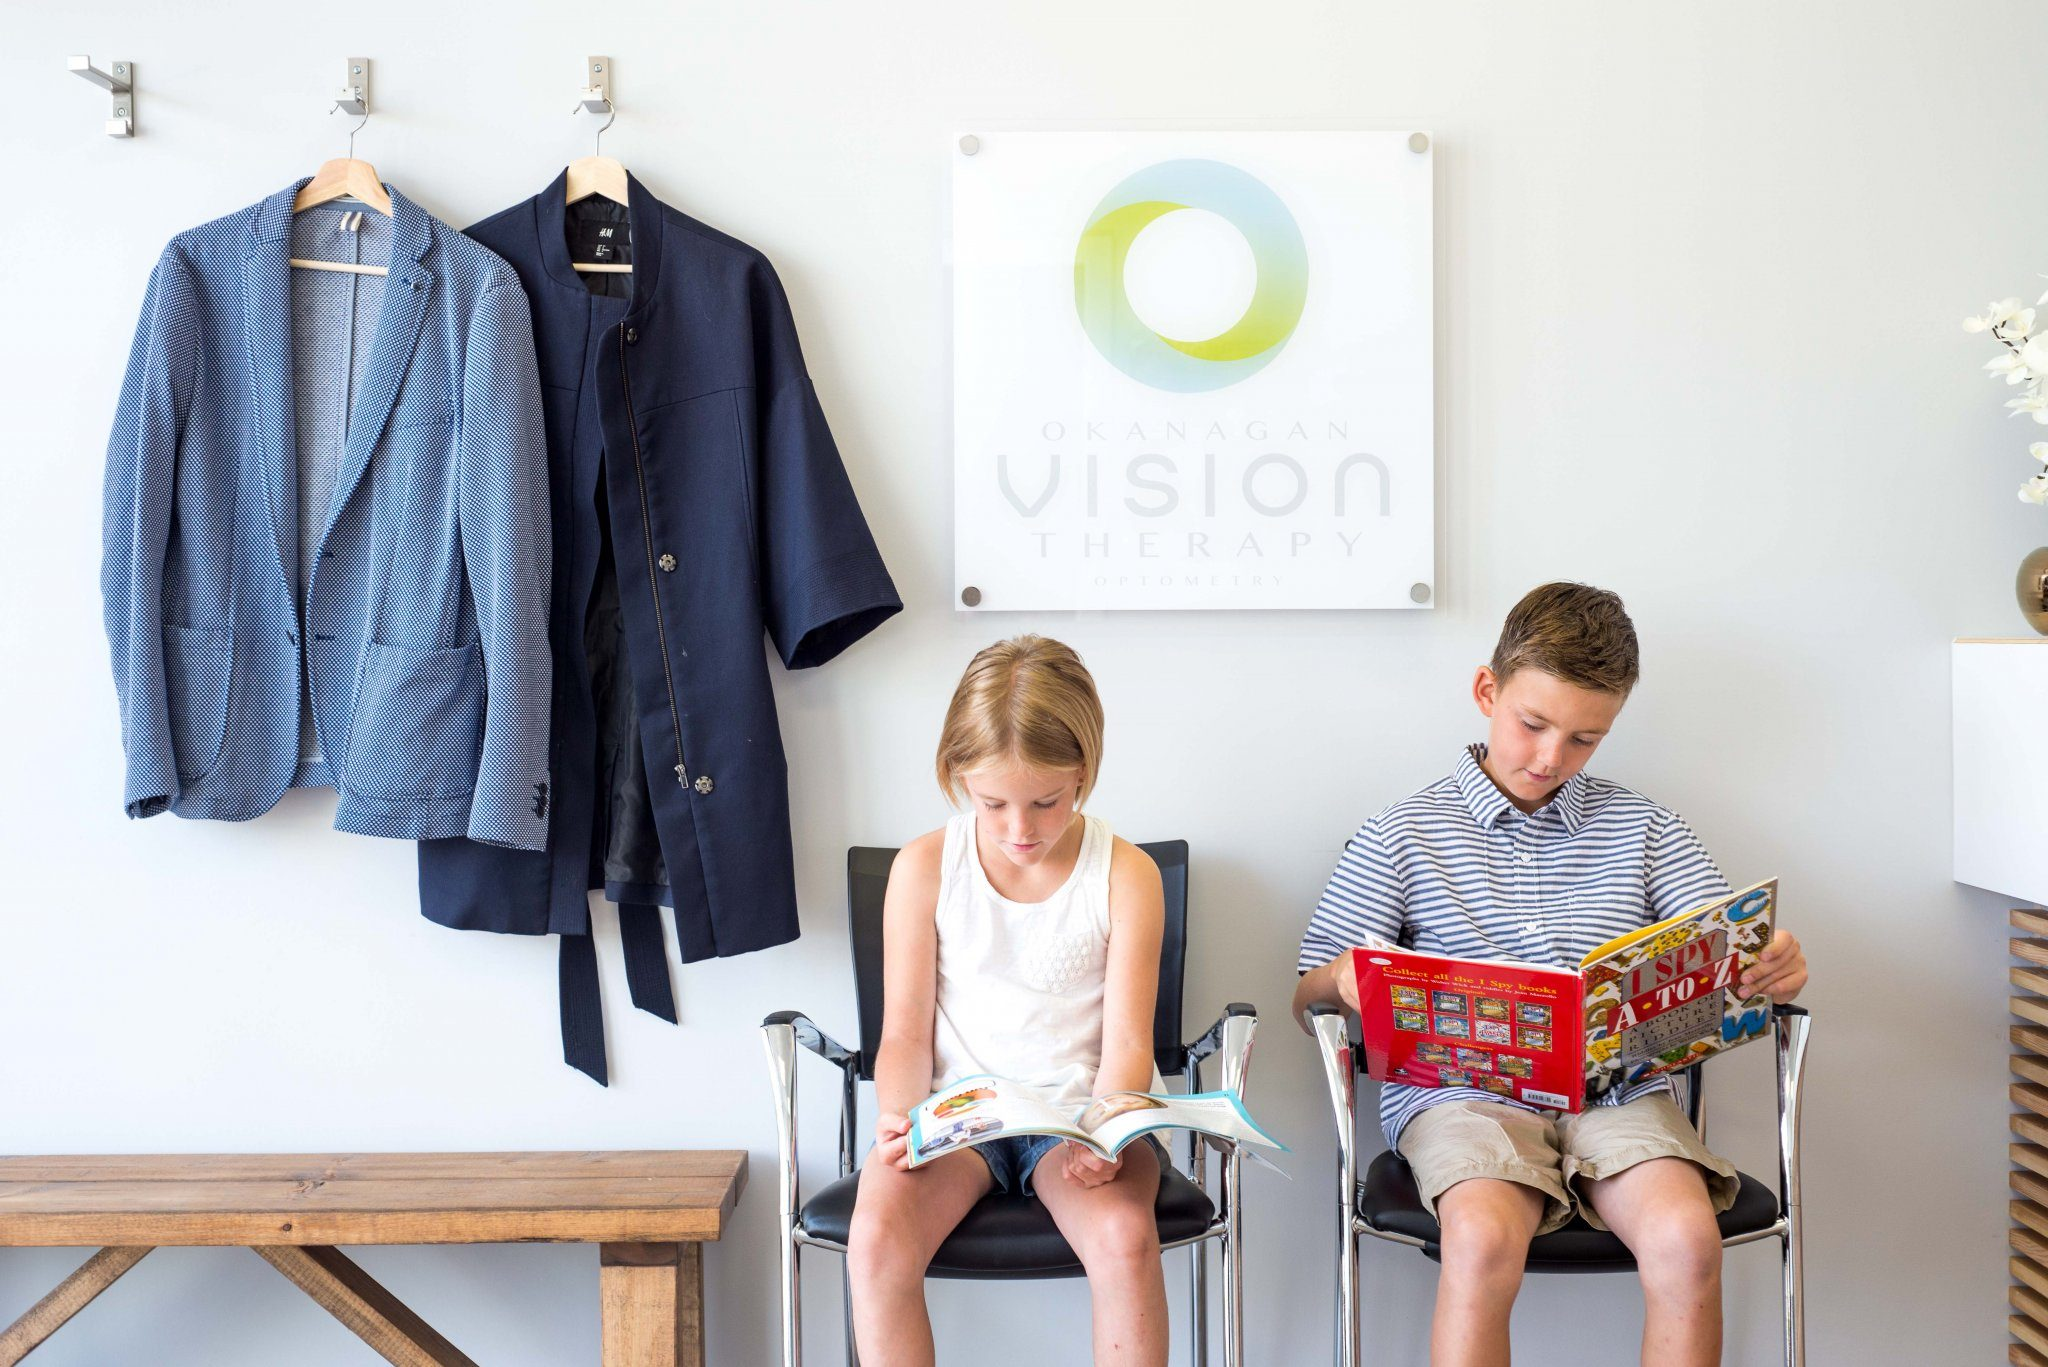 Read more on Okanagan Vision Therapy Optometry